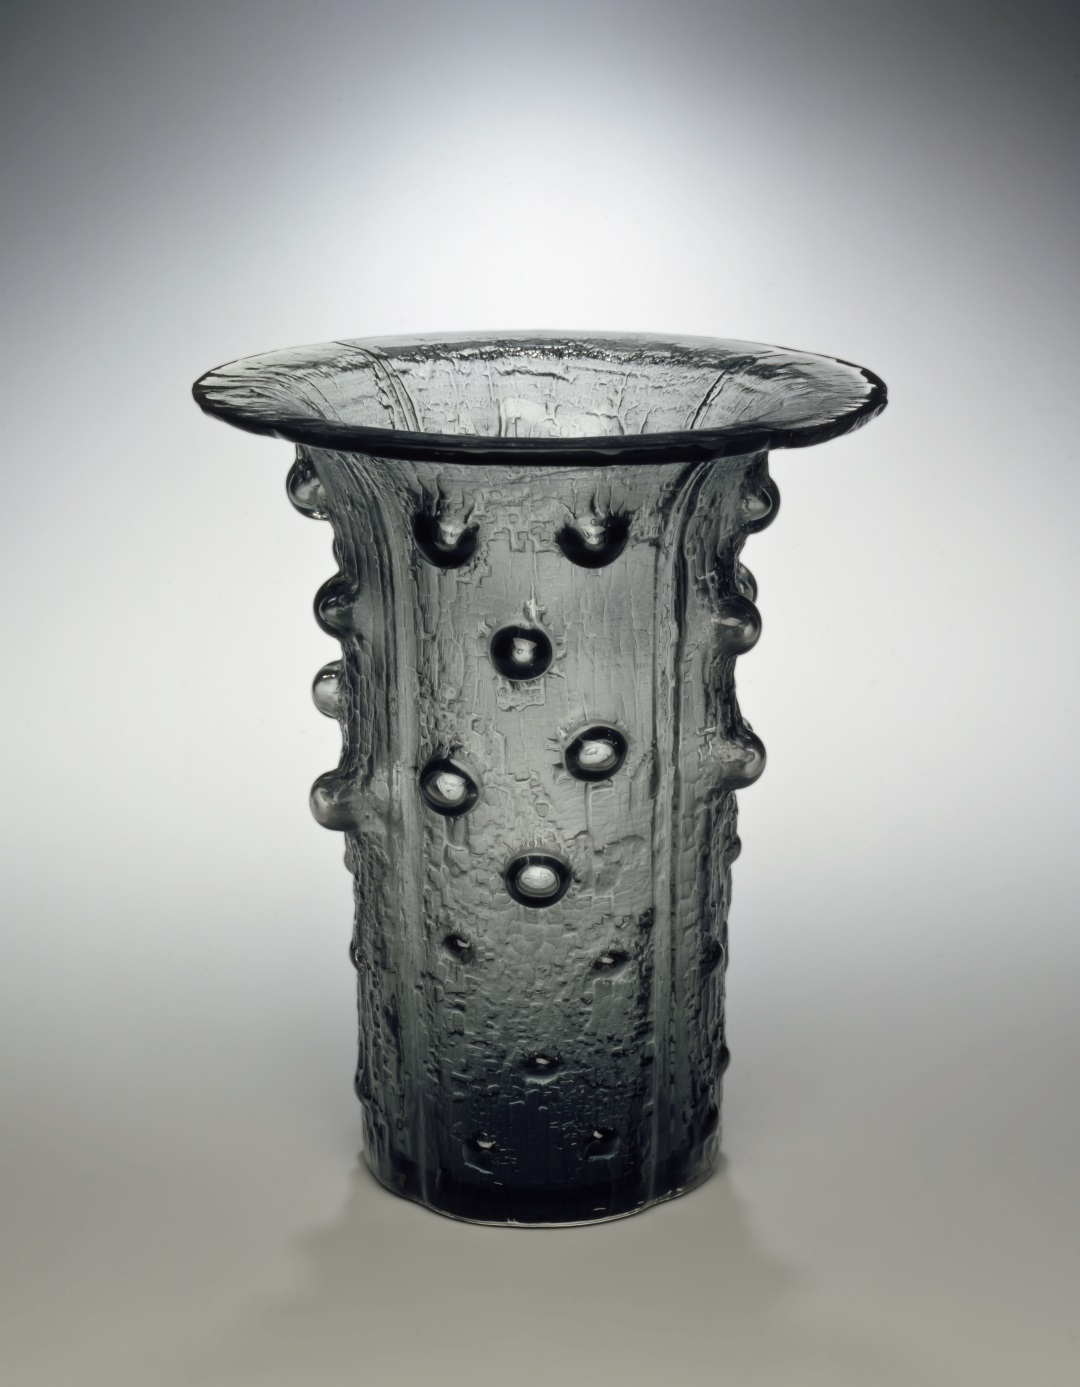 Cylindrical vase of textured glass with bumps and wide flared opening at the top.